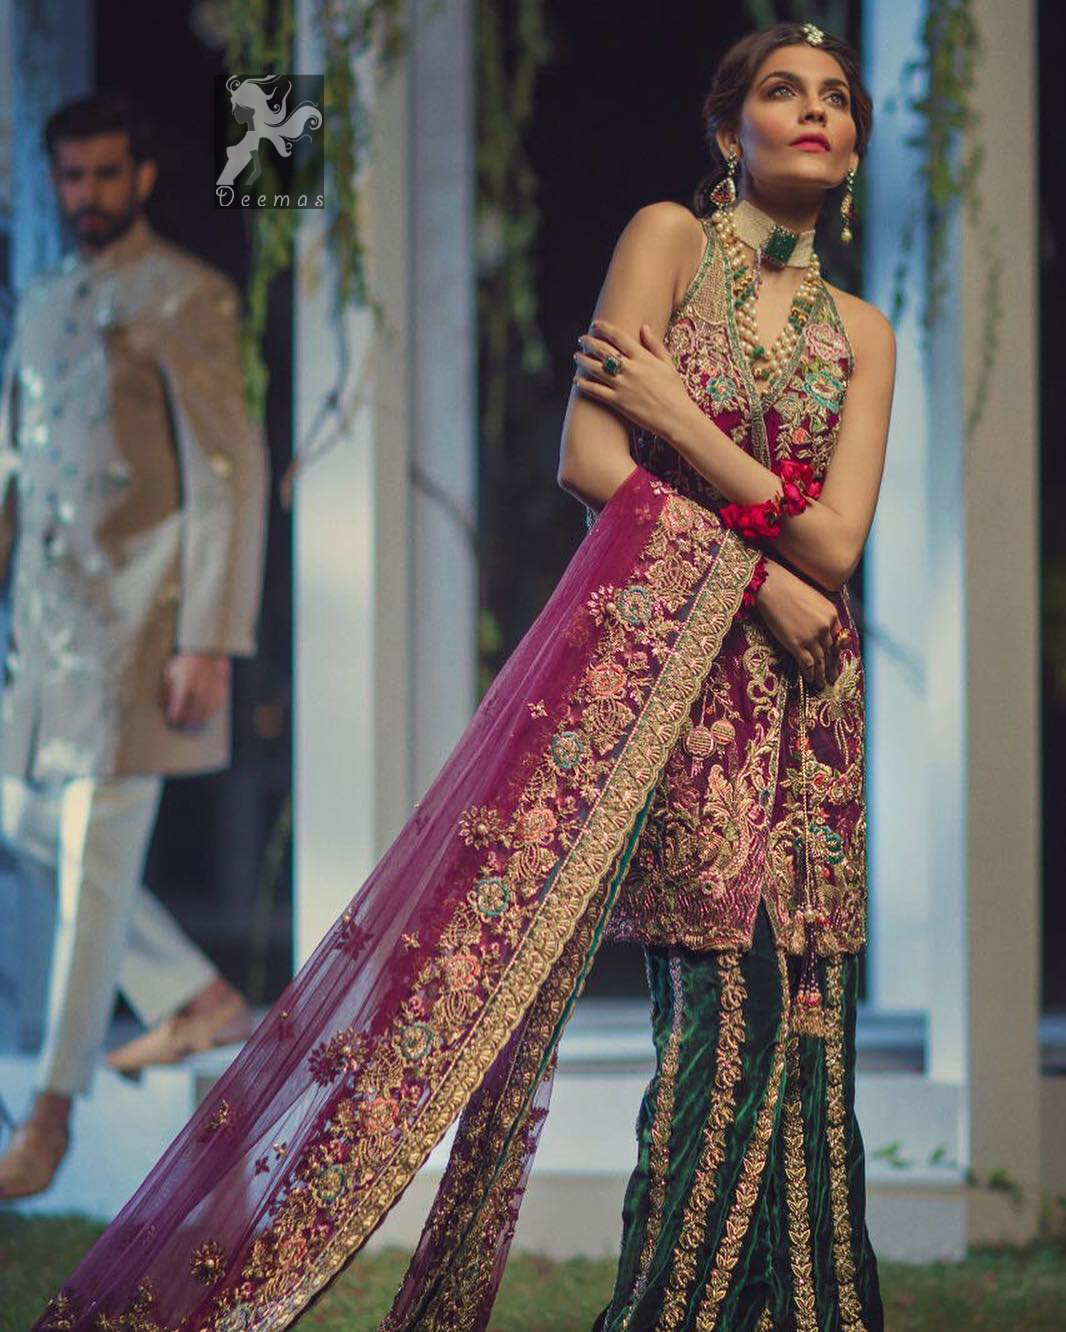 Claret colour peplum having halter neck design with bottle green loose trousers and heavy embellished Dupatta